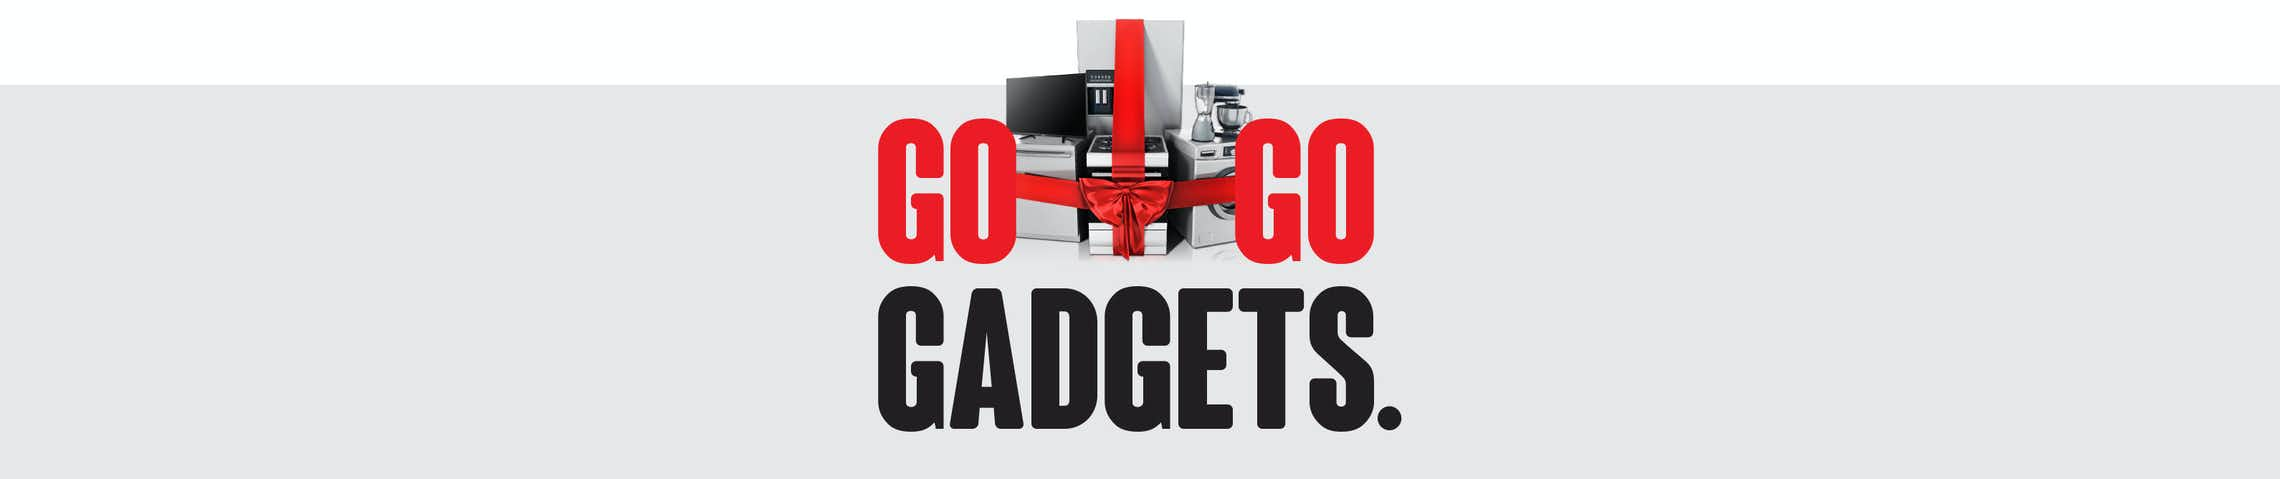 Win £1,500 of Vouchers to spend on Gadgets & Gifts in November*